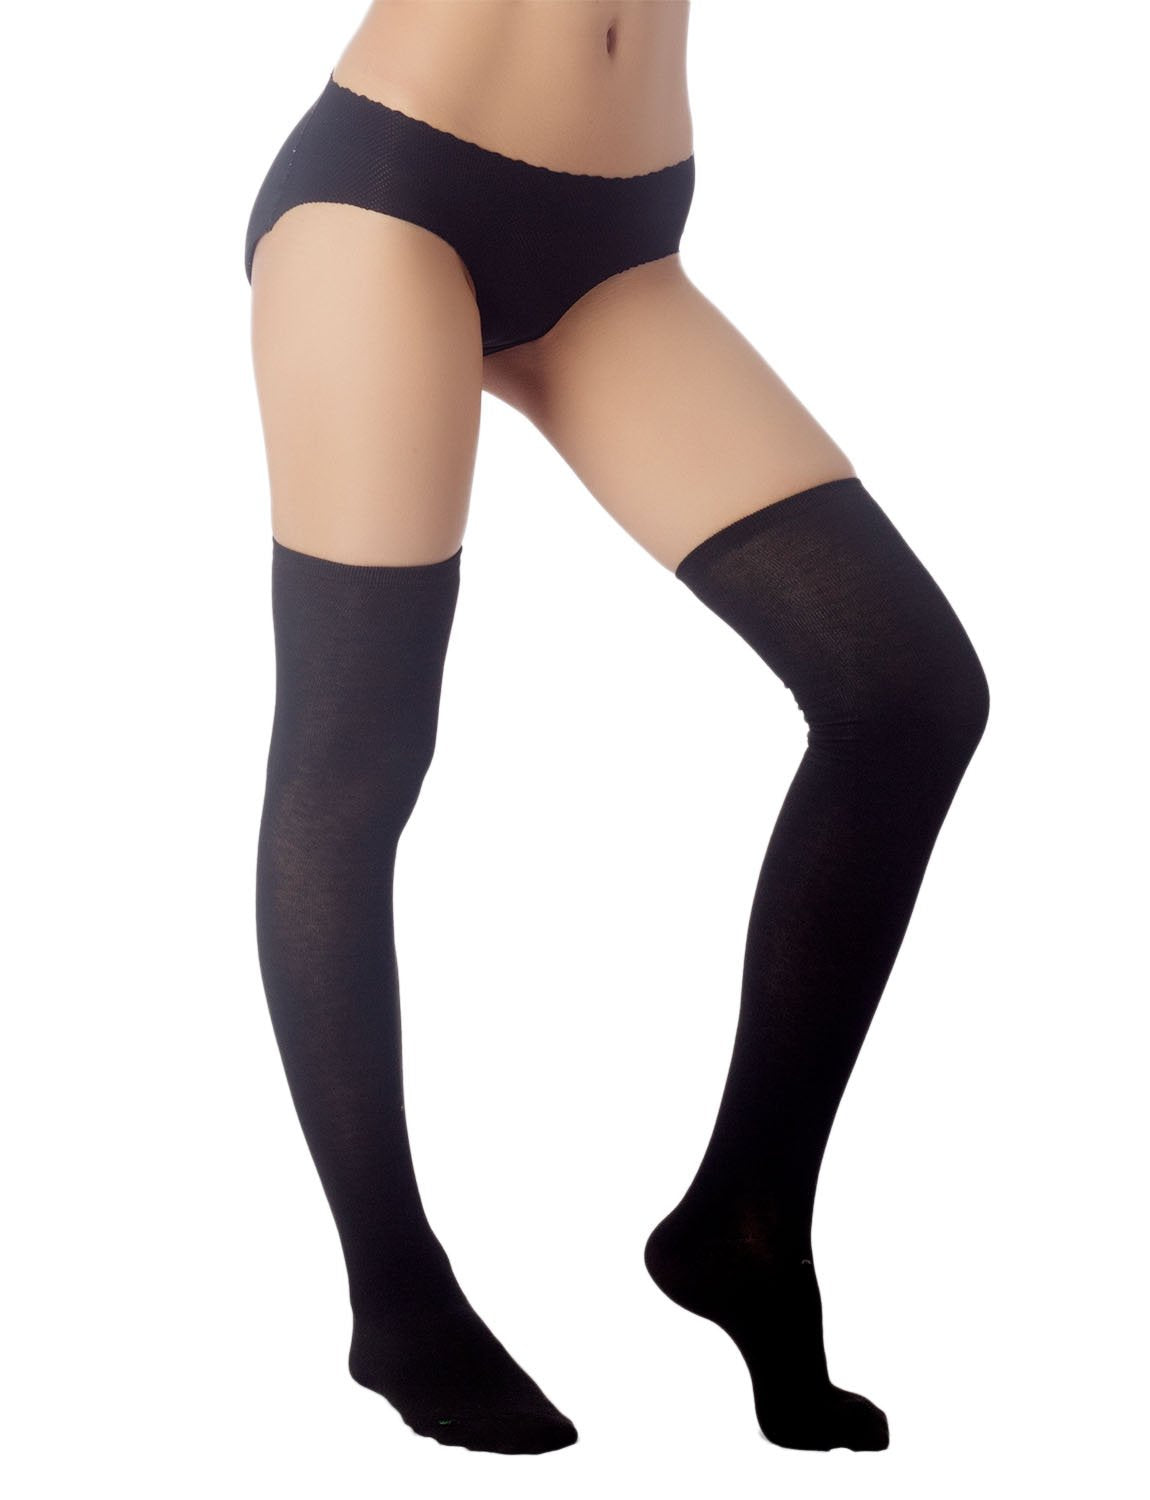 Women's Navy Stripes Sports Football Style Cute Hold-Up Thigh High Socks, Size: One Size, Sand Black